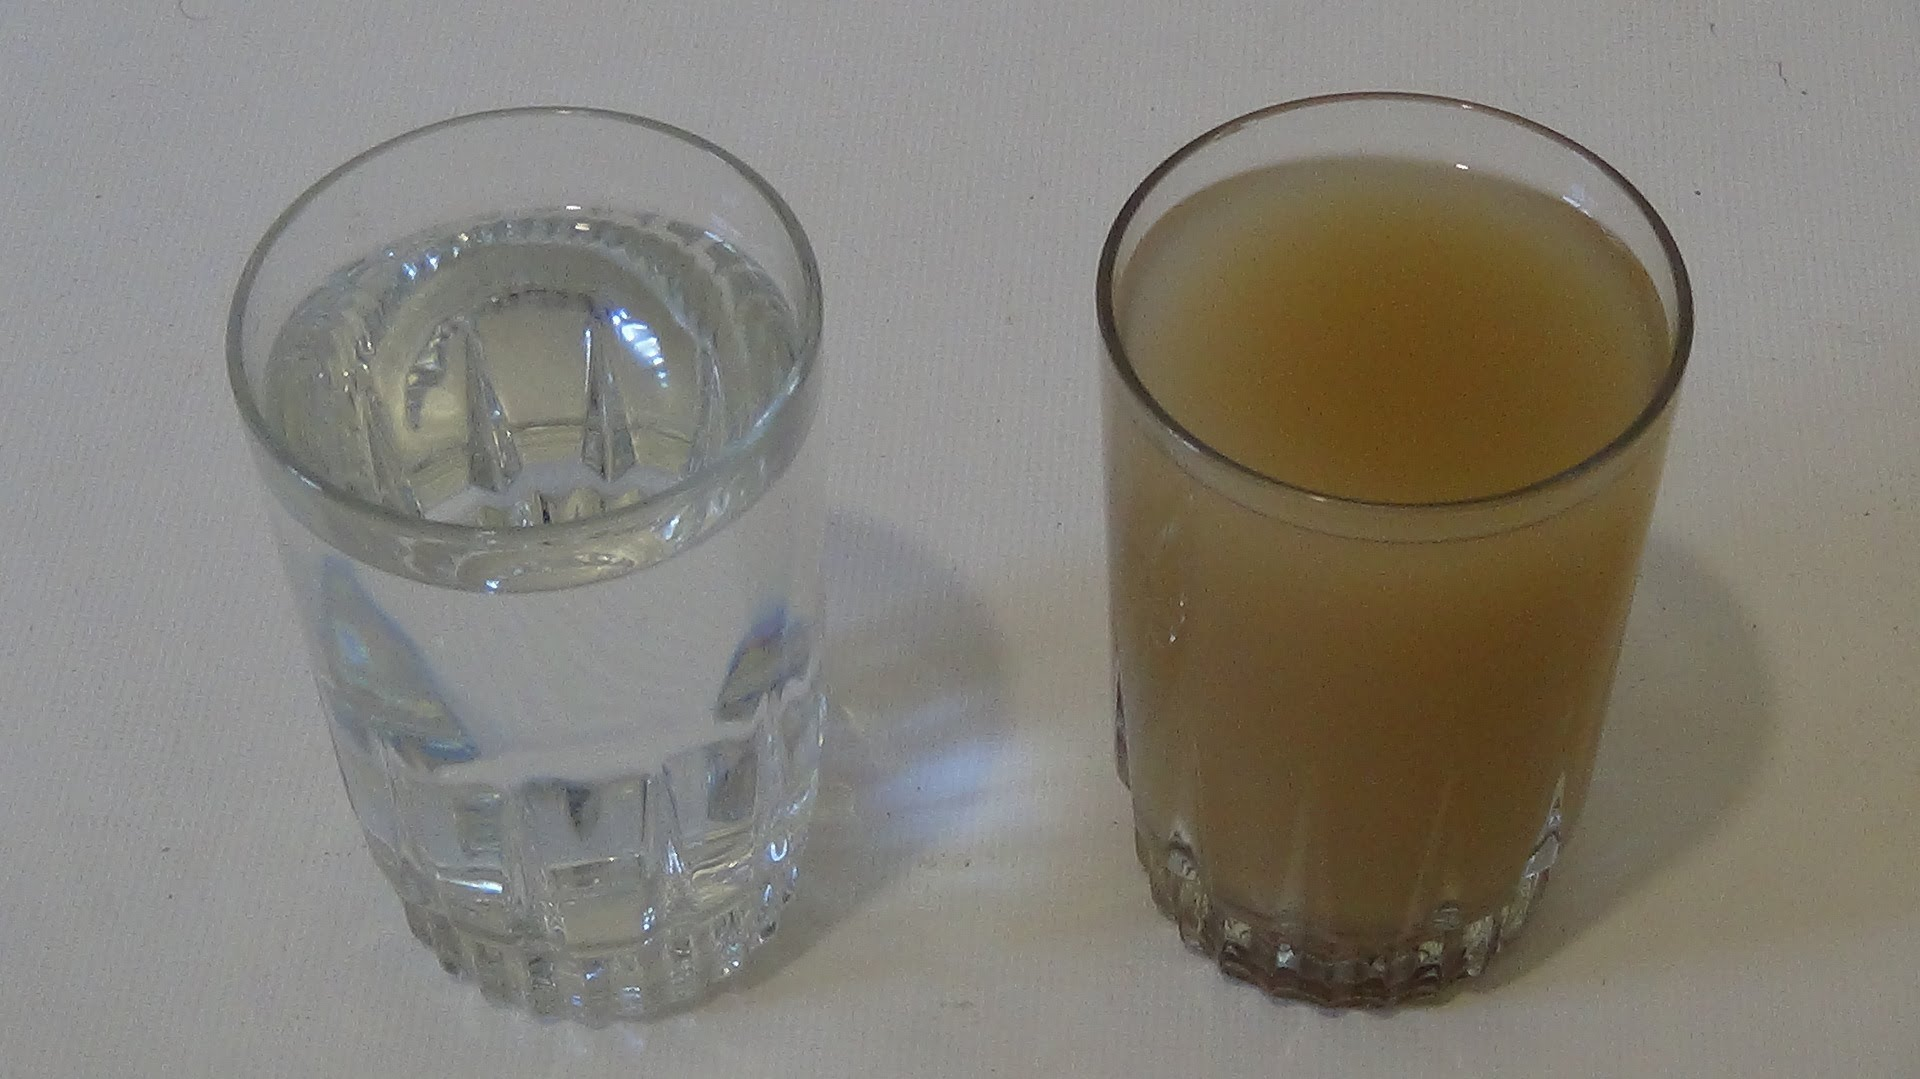 Best Water Filtration System >> How to Drink Dirty Water in Emergency Situation - Survival